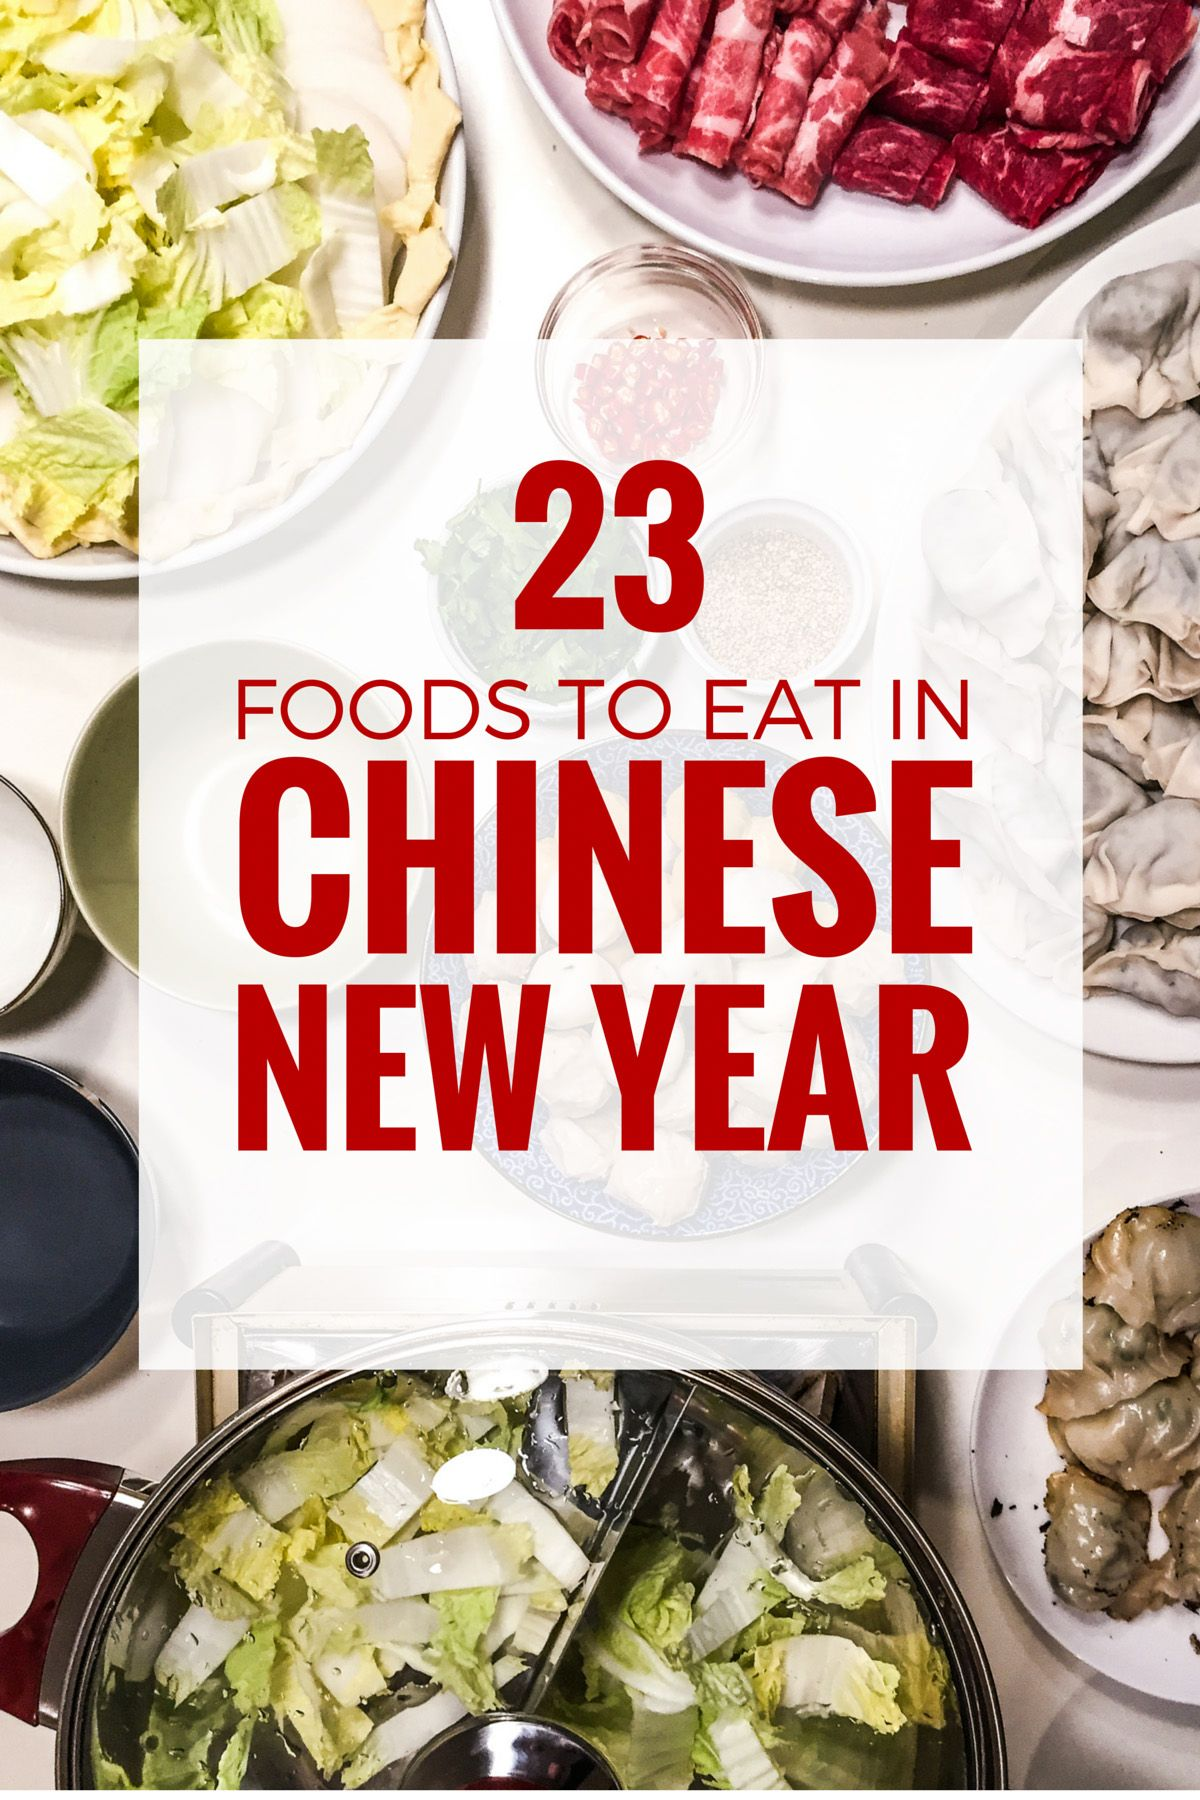 Chinese new year food discover 23 foods that you cant miss during chinese new year food discover 23 foods that you cant miss during chinese new year httpbaconismagic forumfinder Gallery